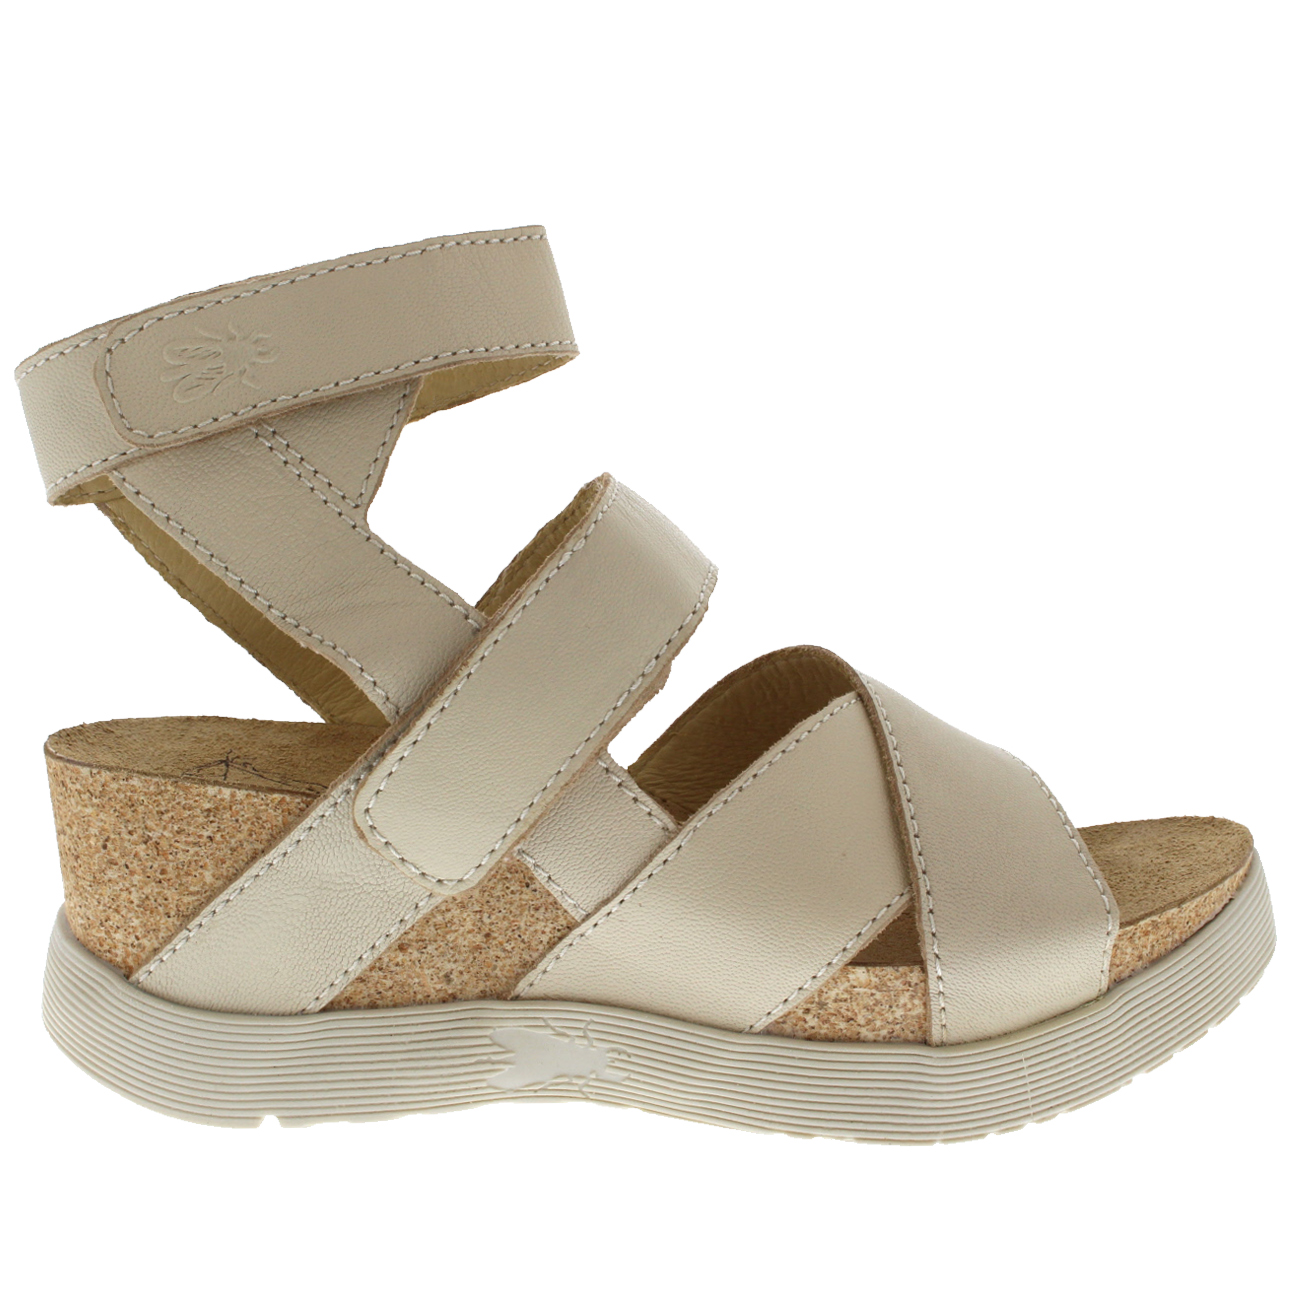 Womens-Fly-London-Wedge-Leather-Open-Toe-Summer-Cut-Out-Sandals-US-5-12 thumbnail 17